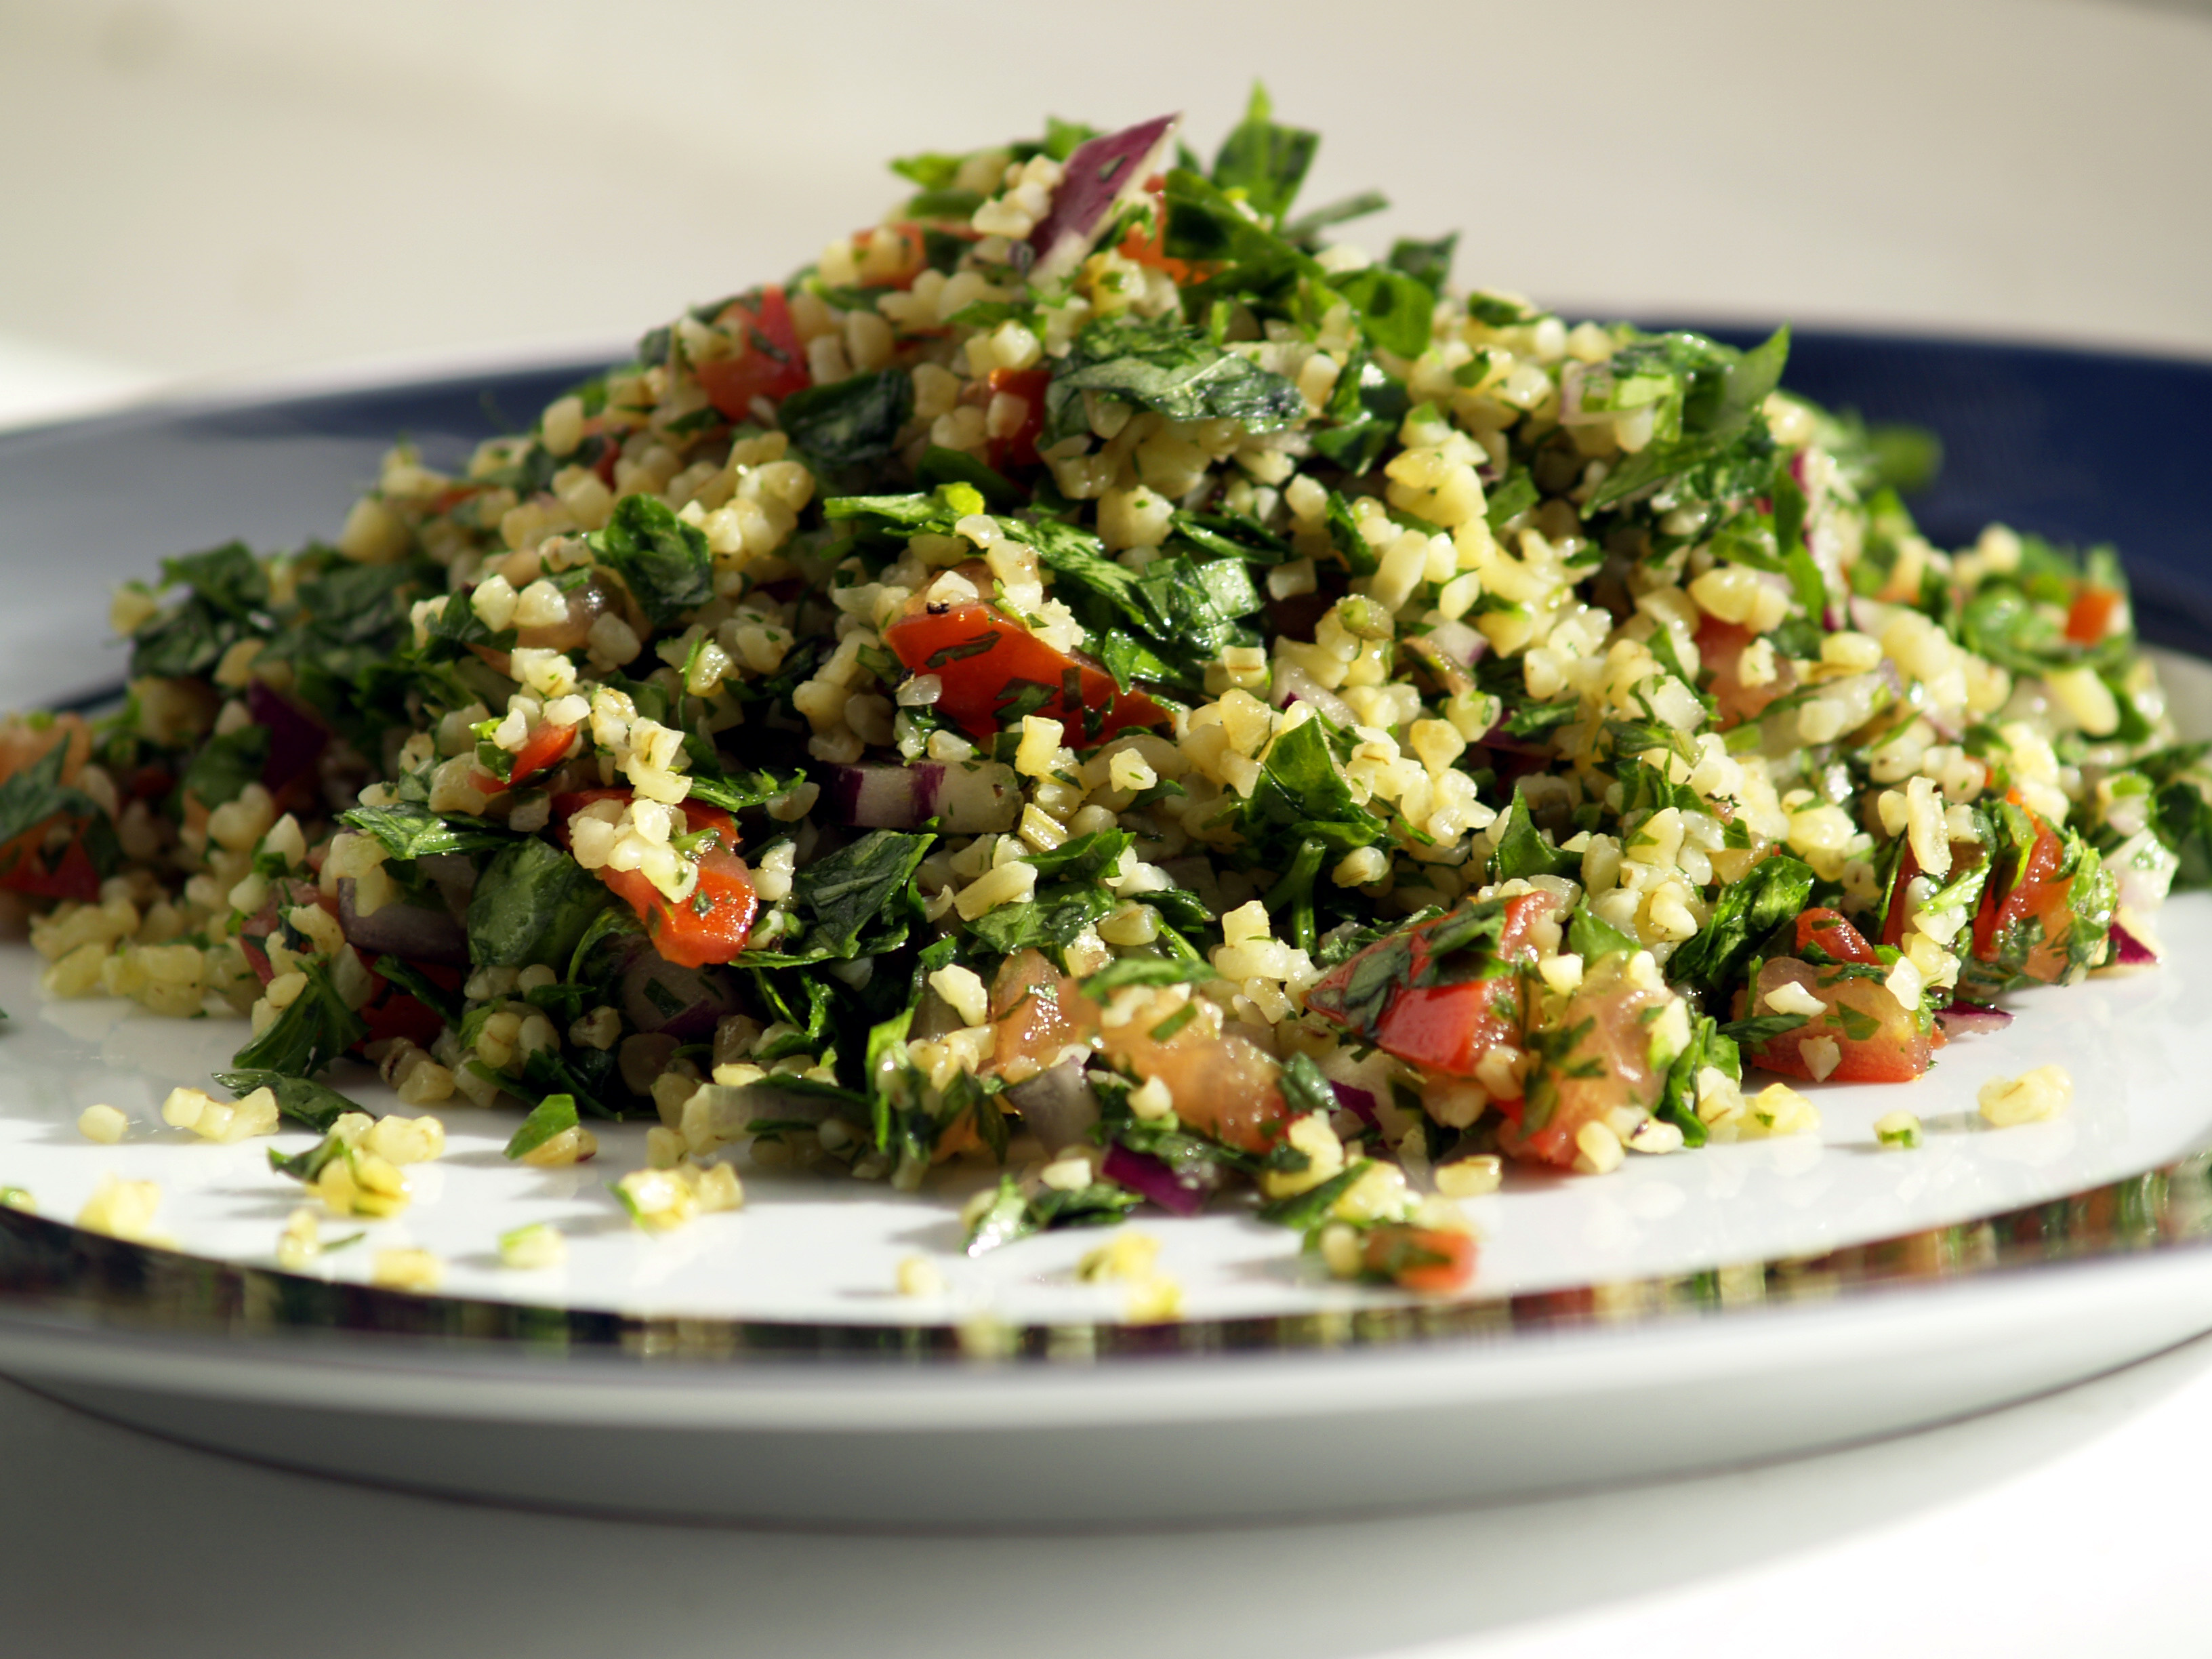 File:Flickr - cyclonebill - Tabbouleh.jpg - Wikimedia Commons